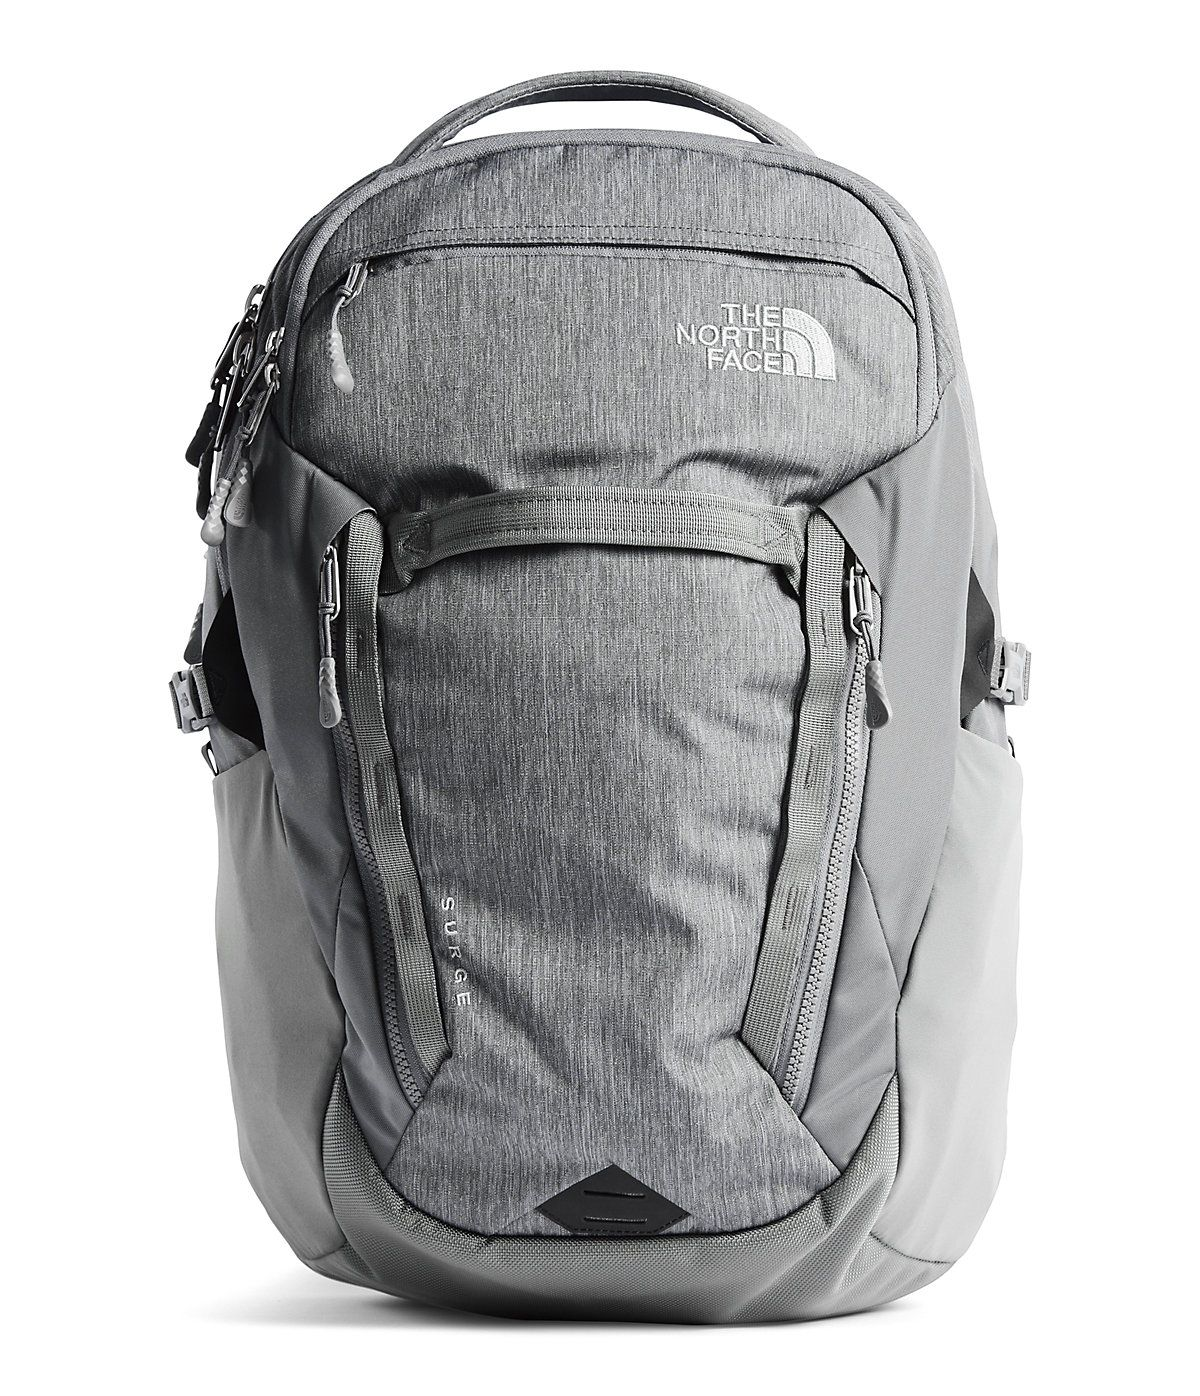 2f9099078 The North Face Surge Backpack (31 Liter) in 2019 | Products ...